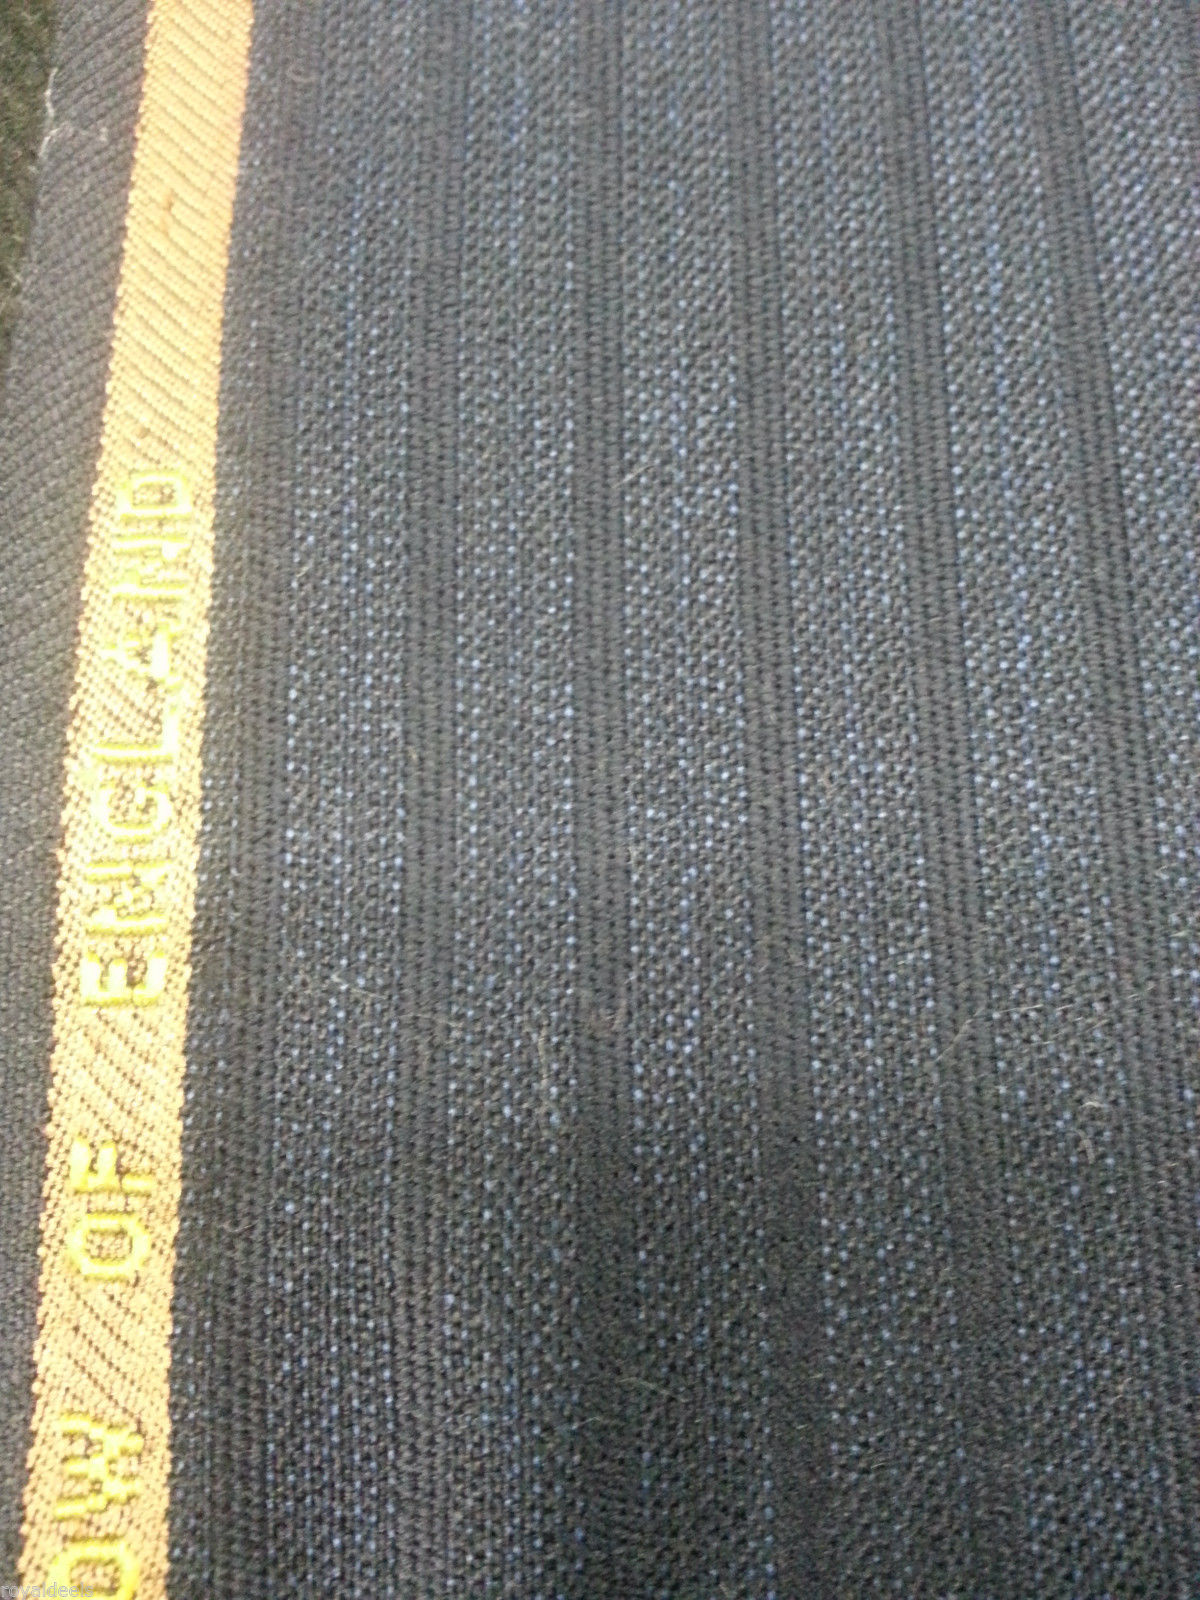 4. Yard Striped Wool Suit / Skirt  Fabric  120'S  FINE ENGLISH  WOOL - MSRP $350